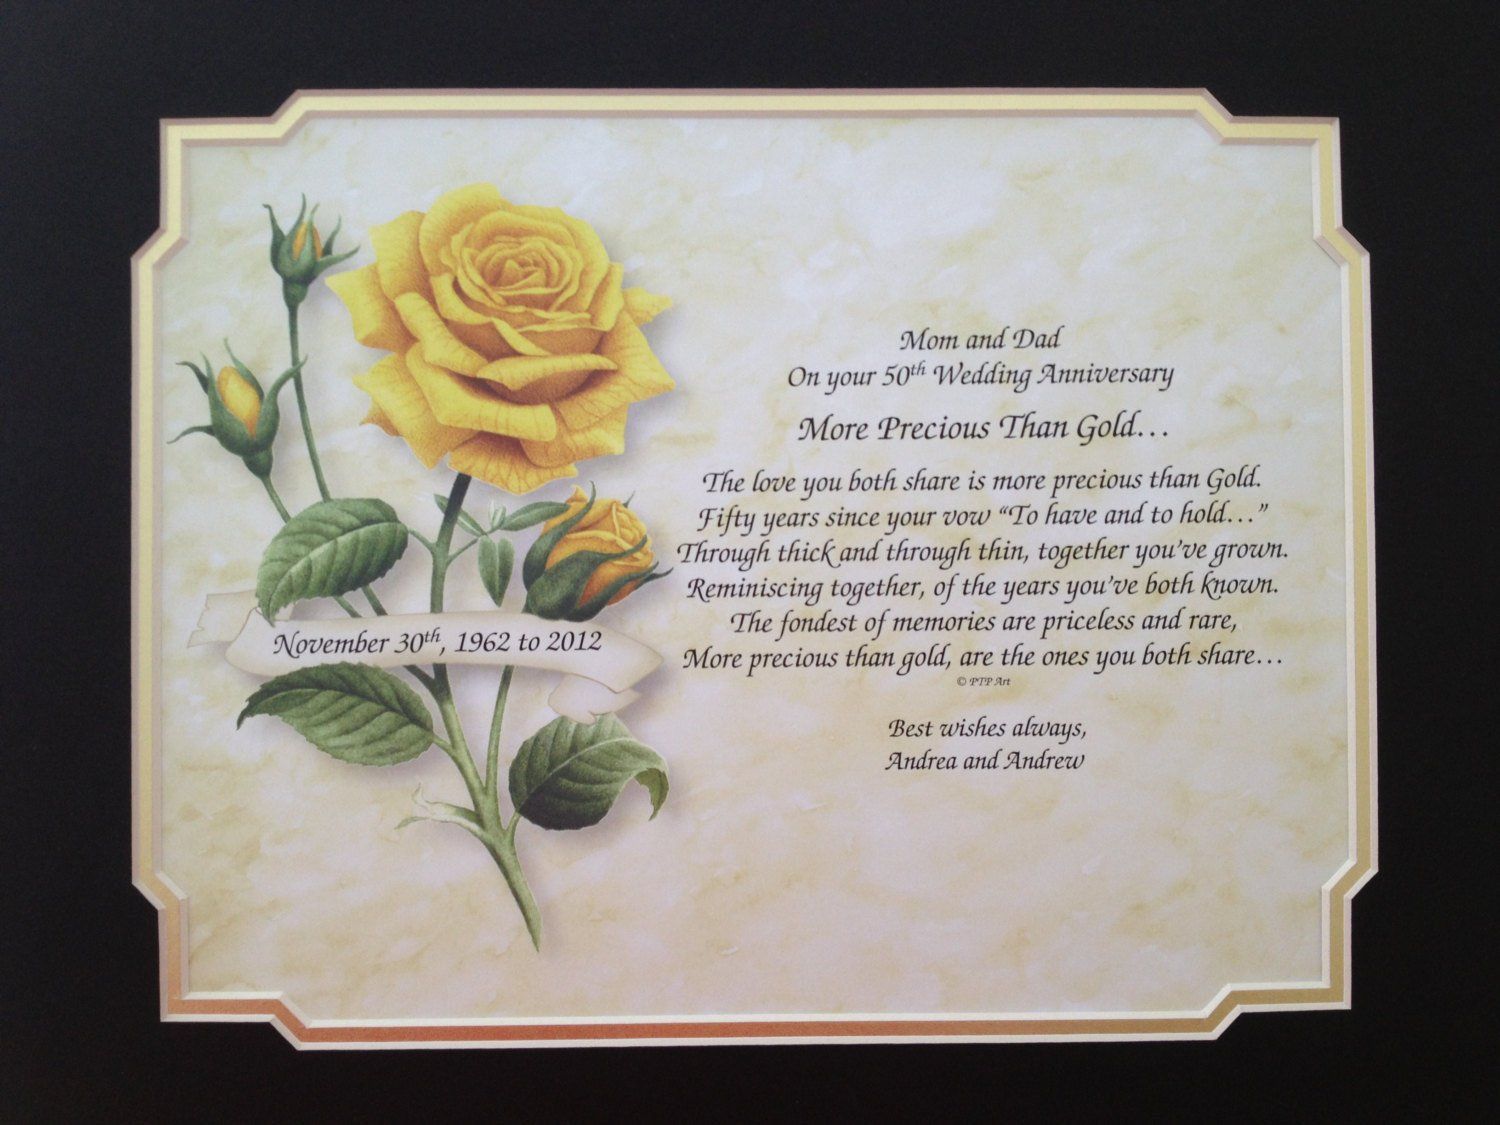 Anniversary Quotes: 50th Wedding Anniversary Quotes And Poems. QuotesGram